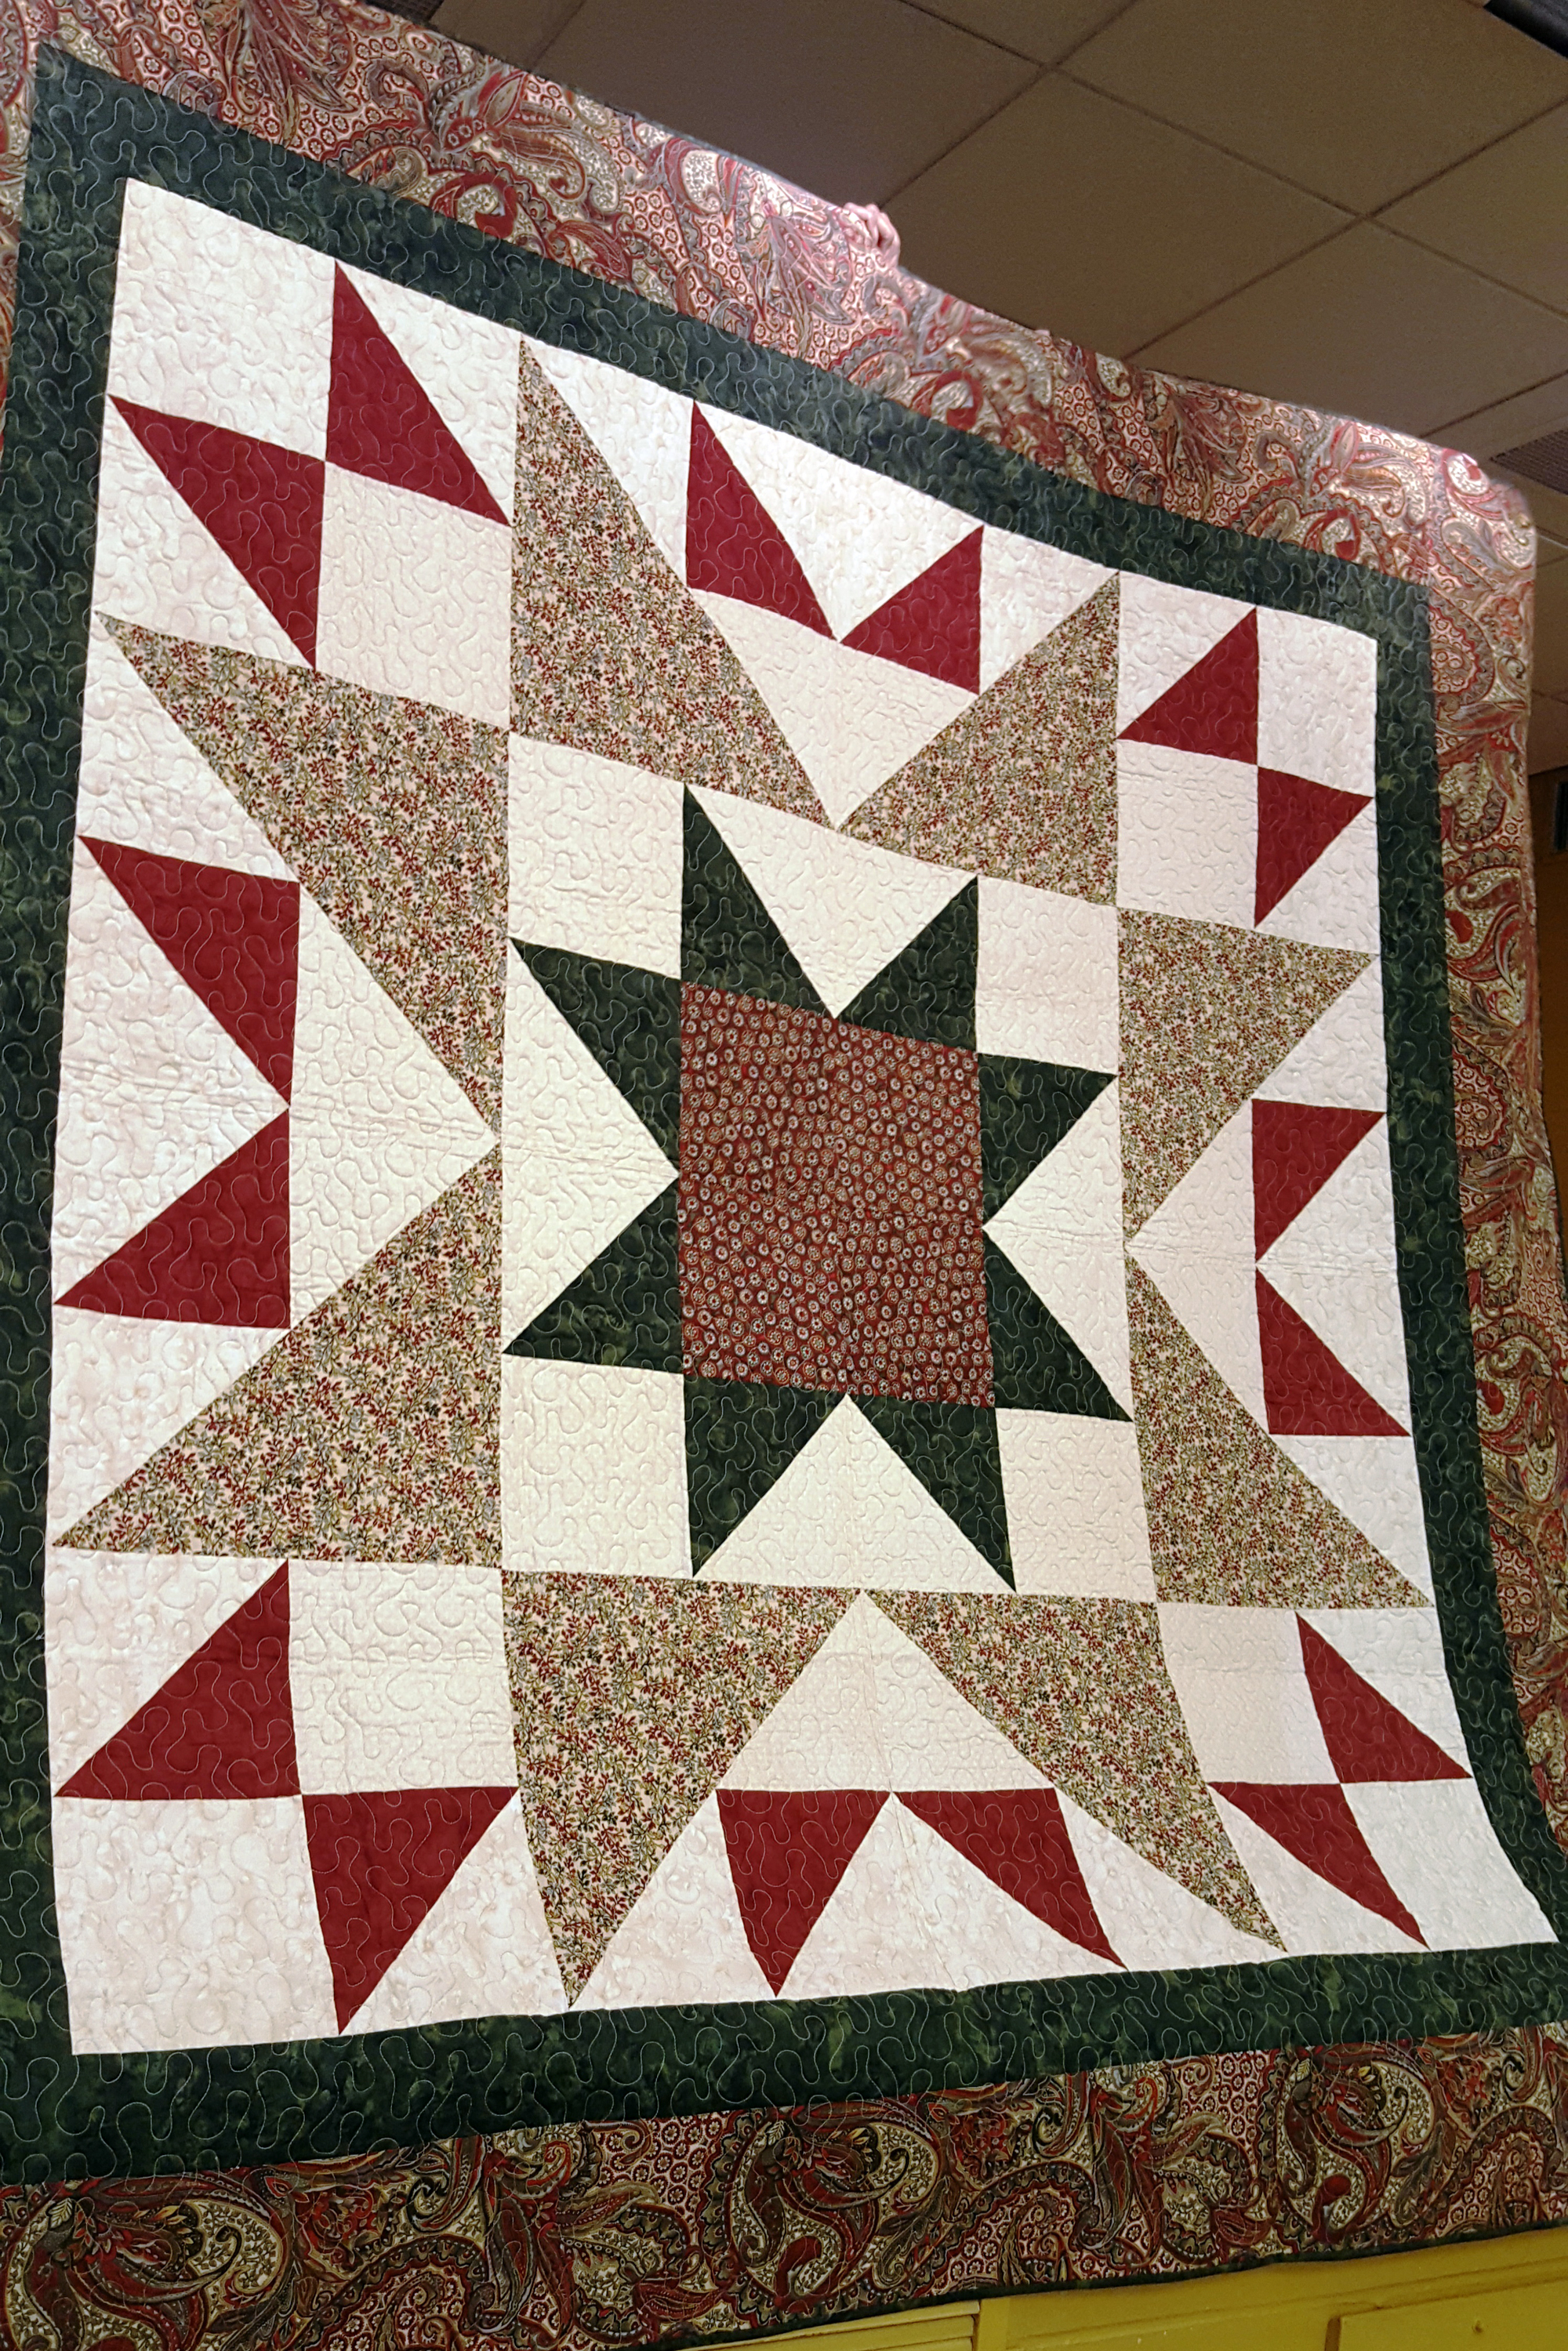 kathy 8 quilt most popular pattern.jpg